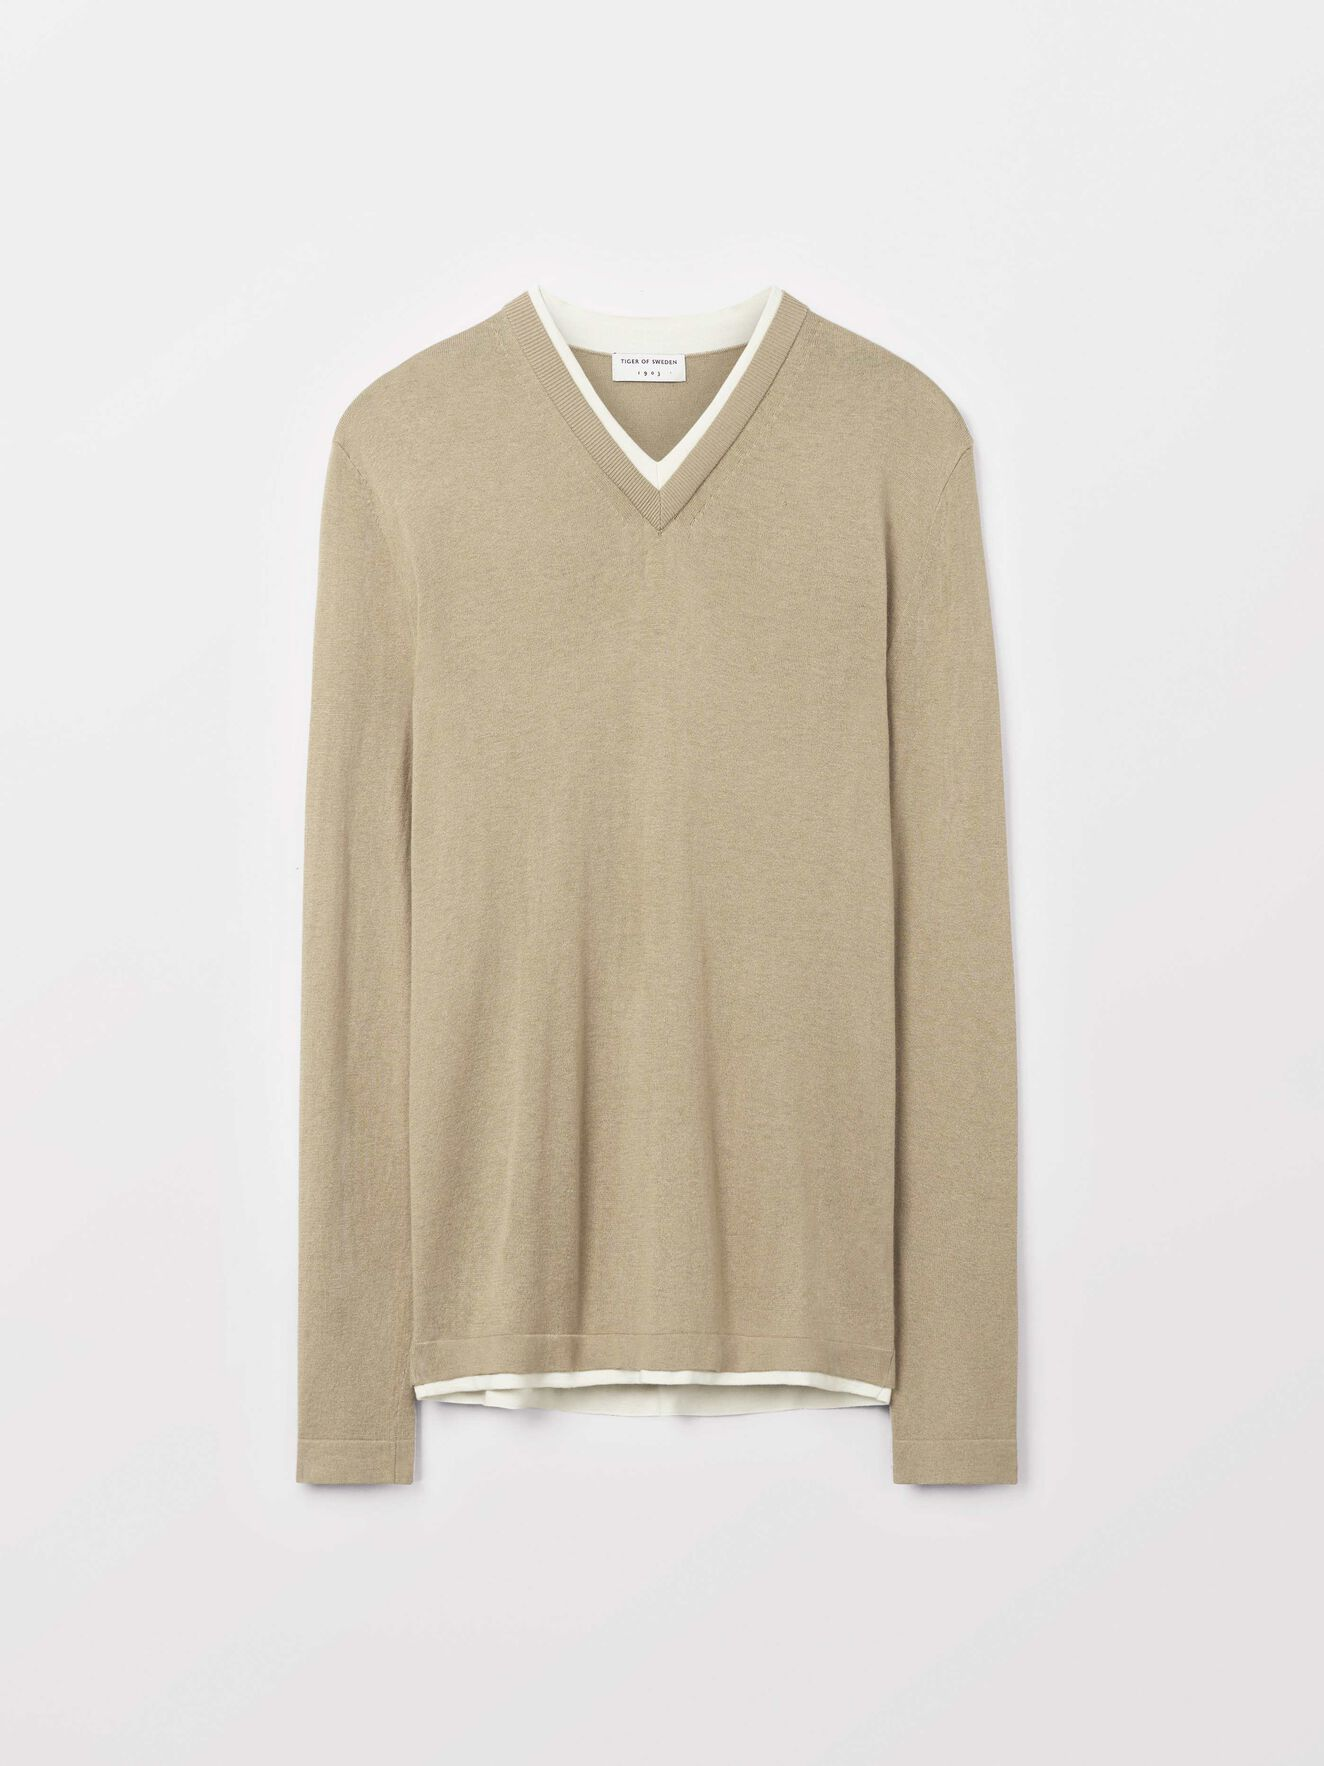 Nitlas Pullover in Dark Sand from Tiger of Sweden